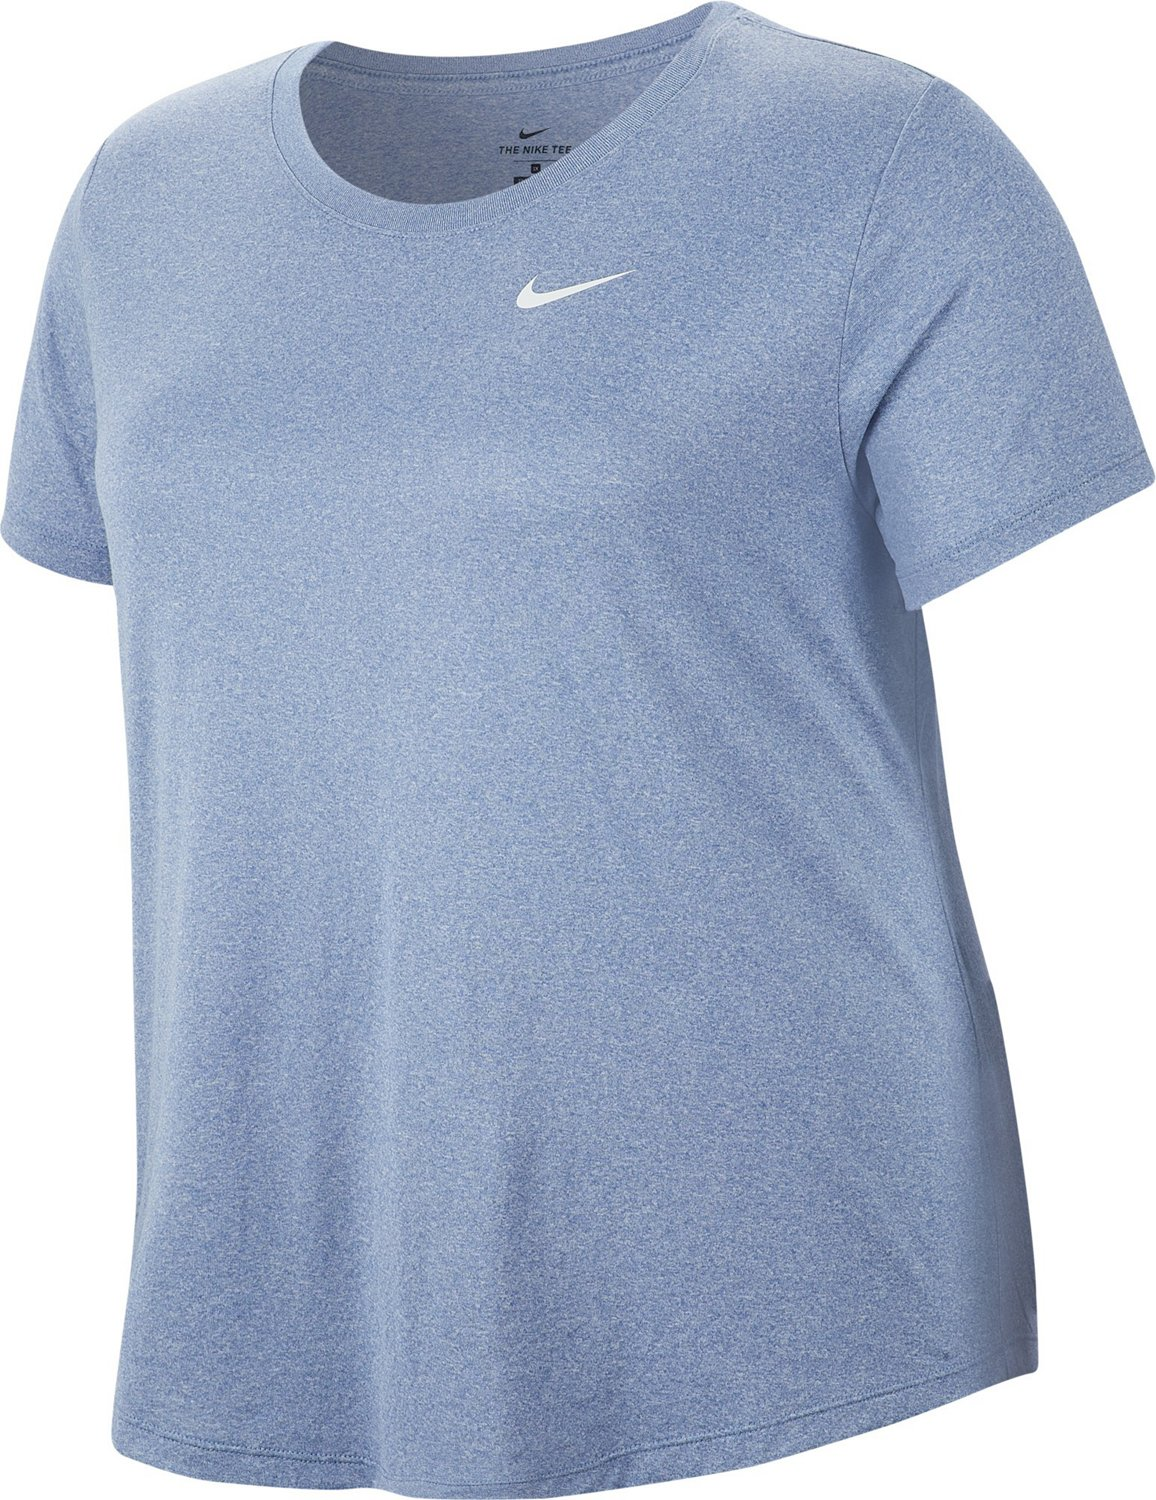 04680ad1 Display product reviews for Nike Women's Dri-FIT Legend Plus Size T-shirt